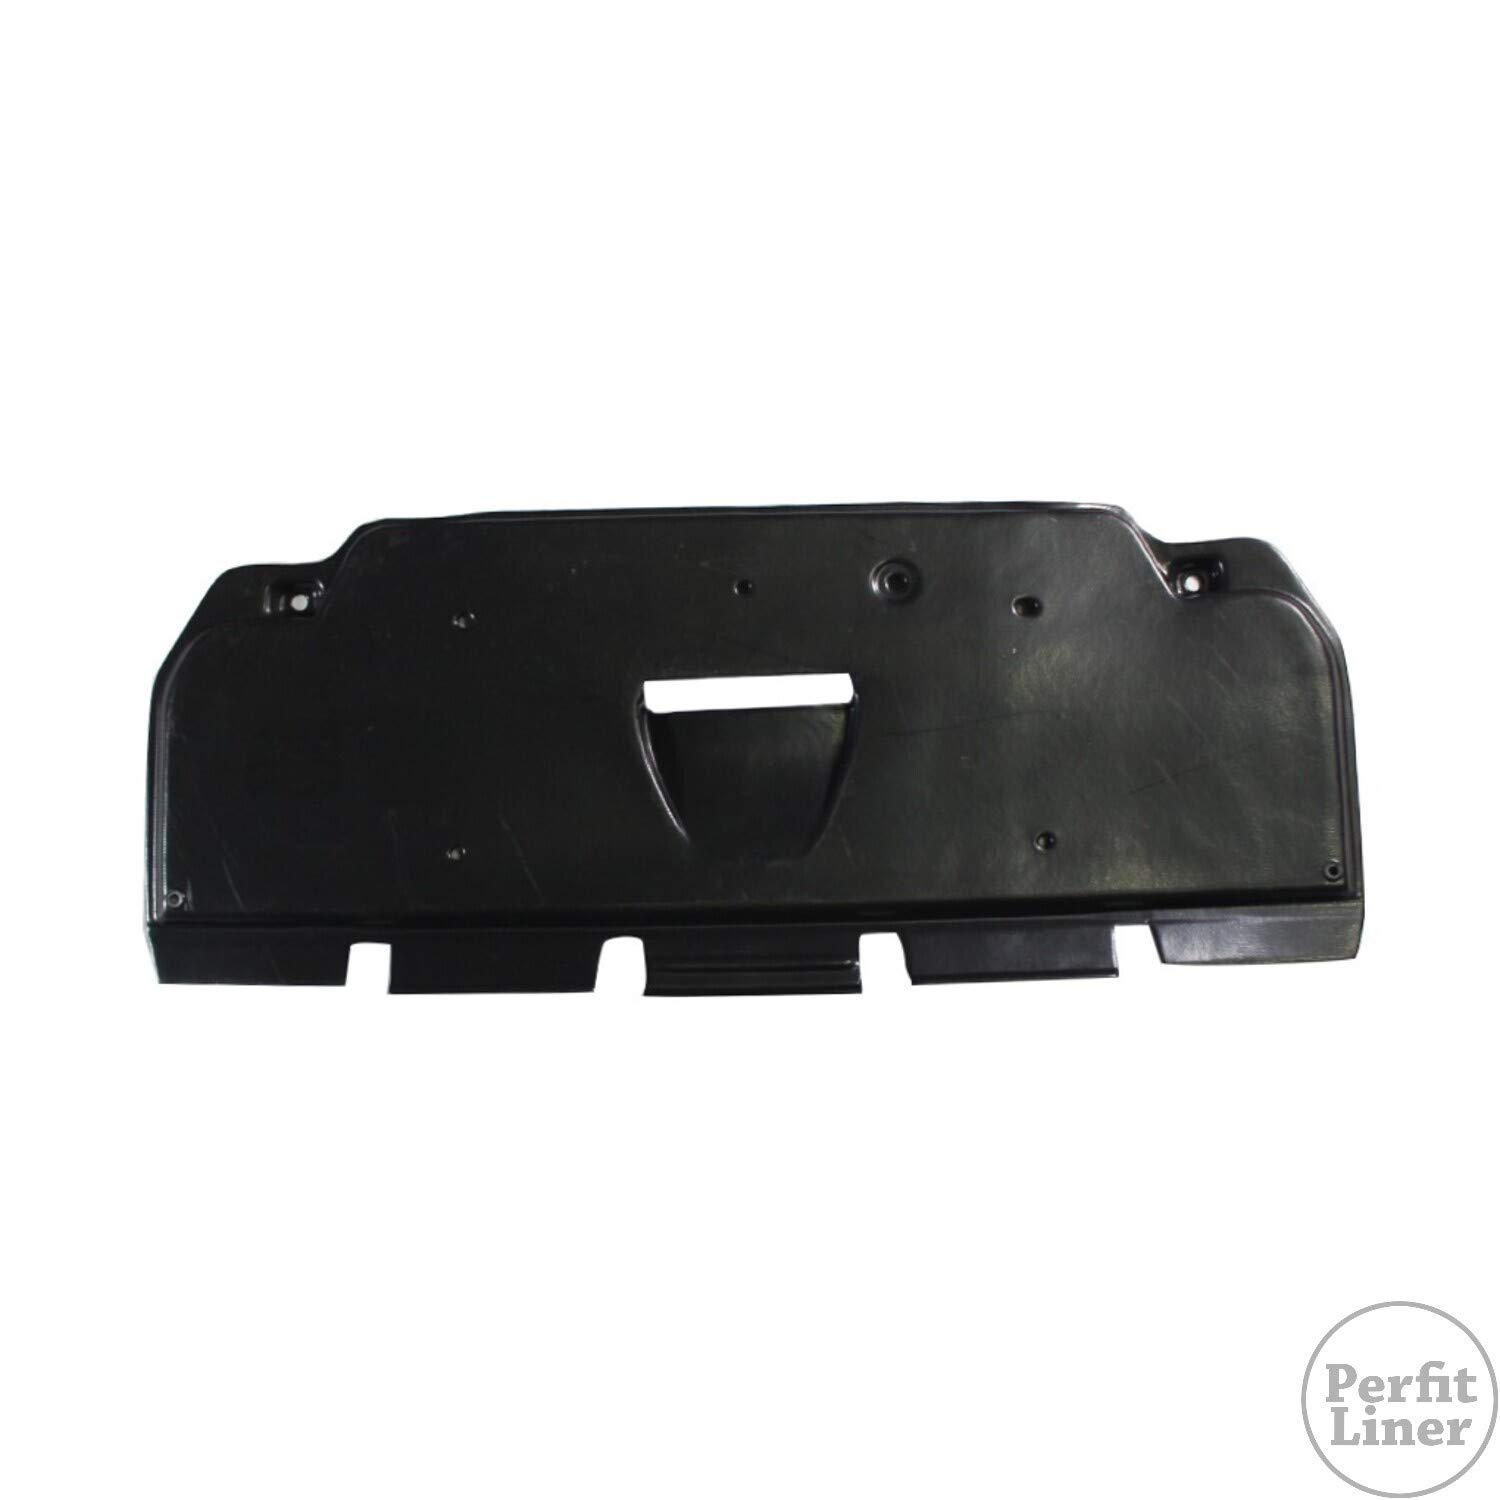 Perfit Liner New Replacement Parts Rear Lower Engine Cover For Audi A6 A6 Quattro Fits AU1228103 4F0863822A